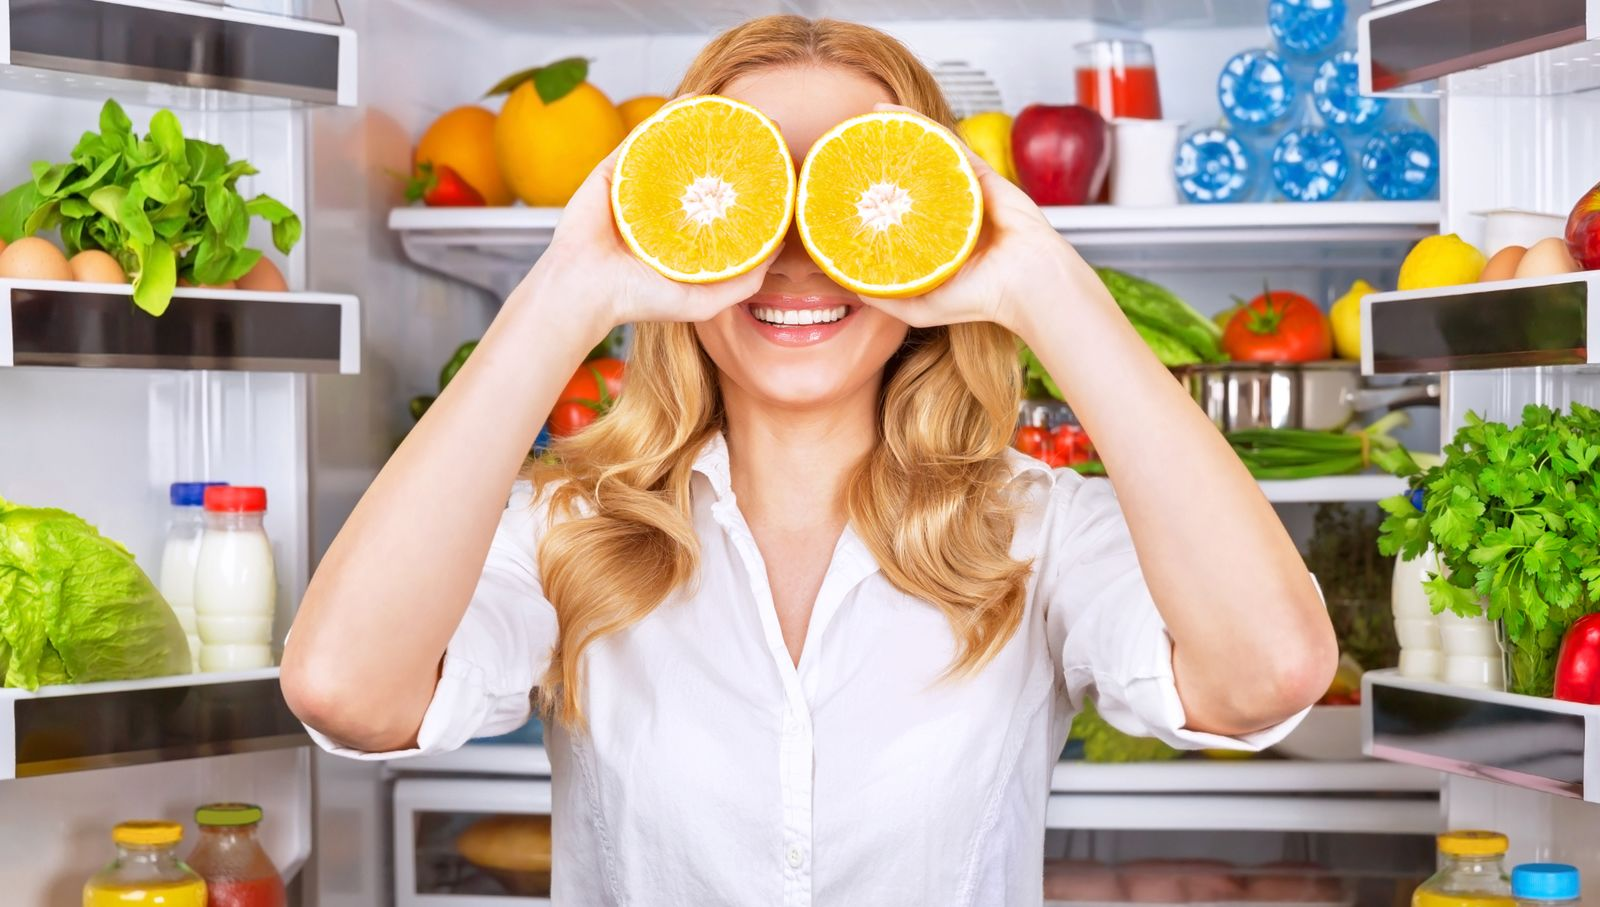 5 Best Foods for Your Eyes